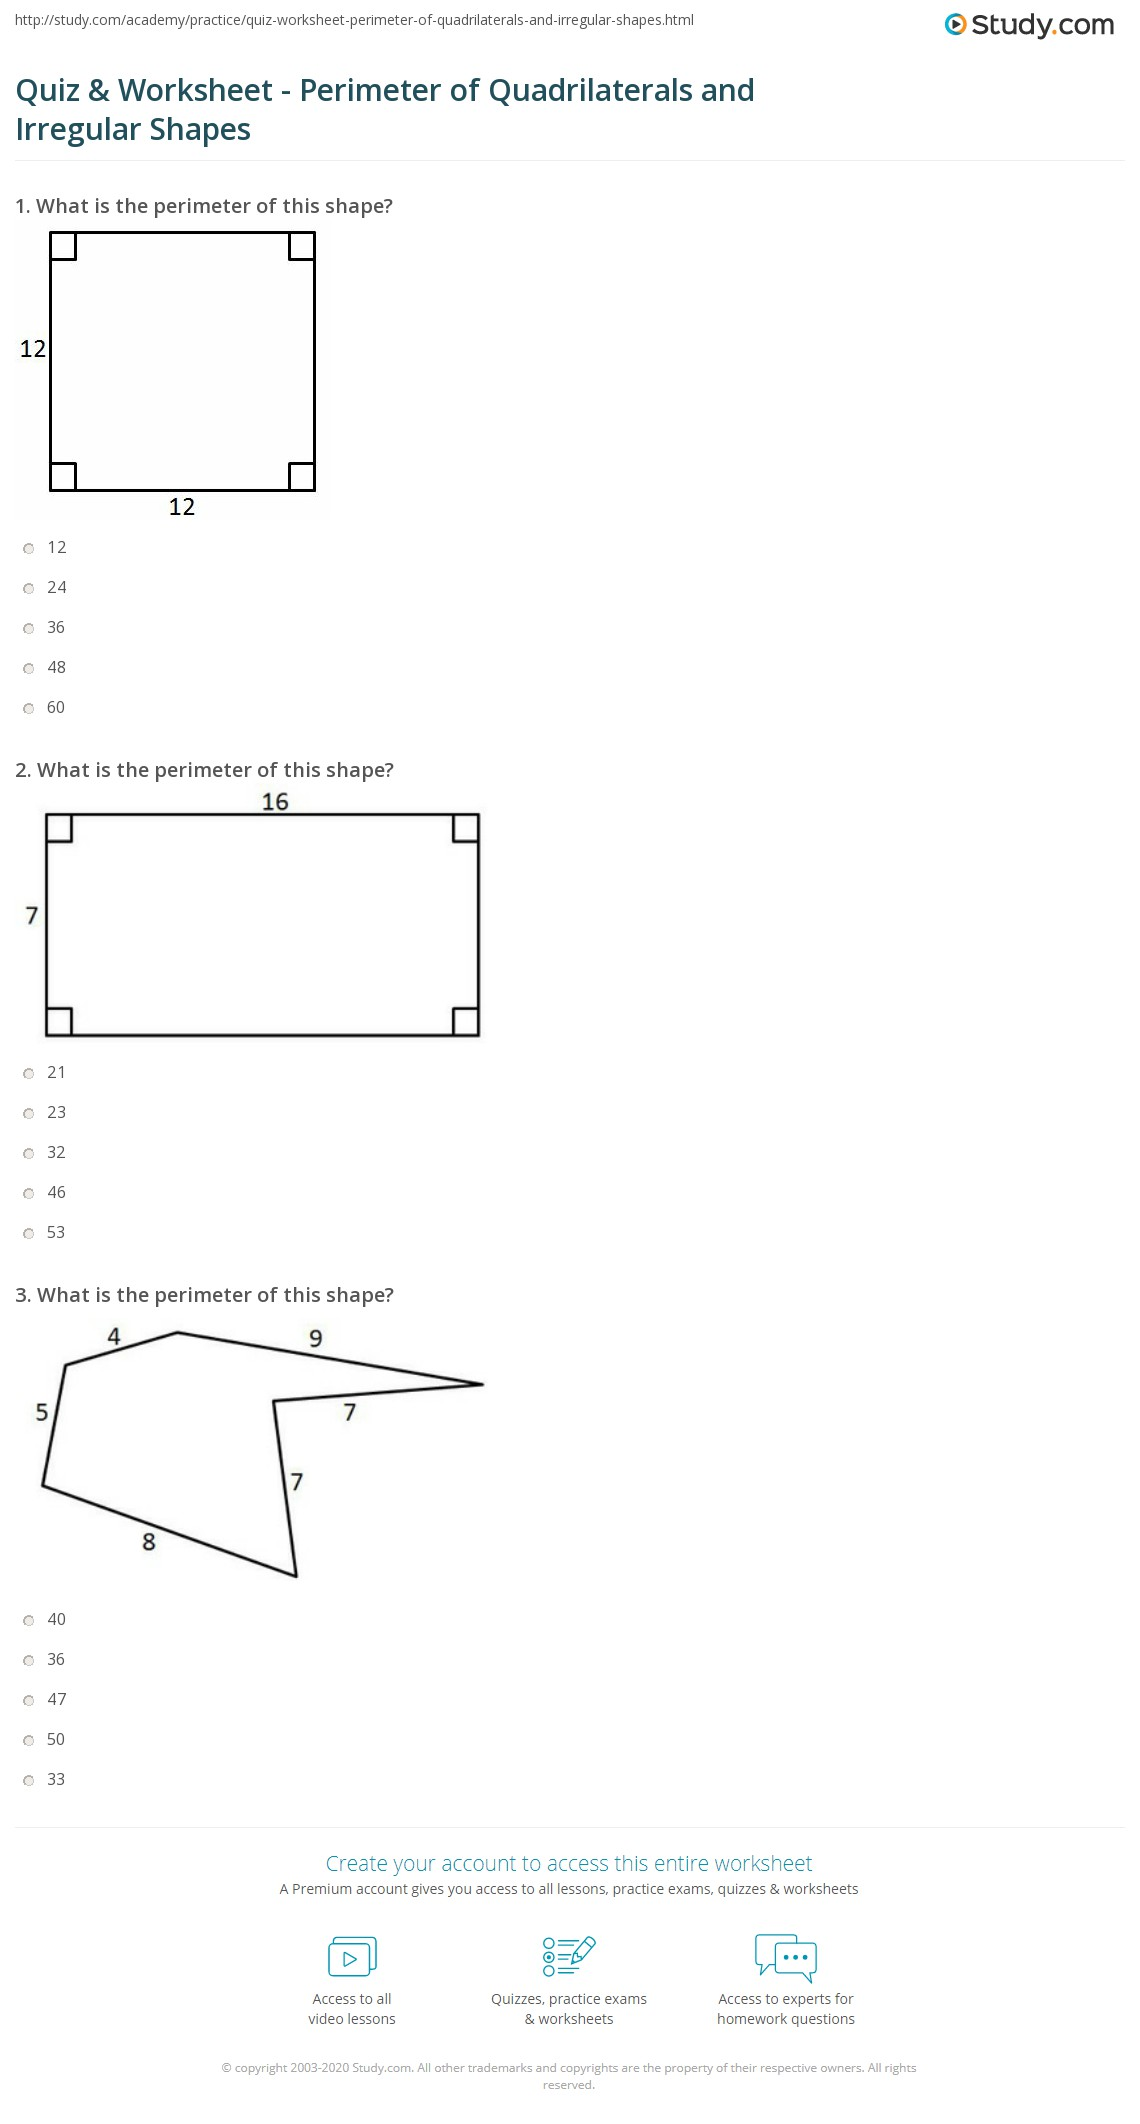 Quiz Worksheet Perimeter of Quadrilaterals and Irregular – Perimeter of Irregular Shapes Worksheet